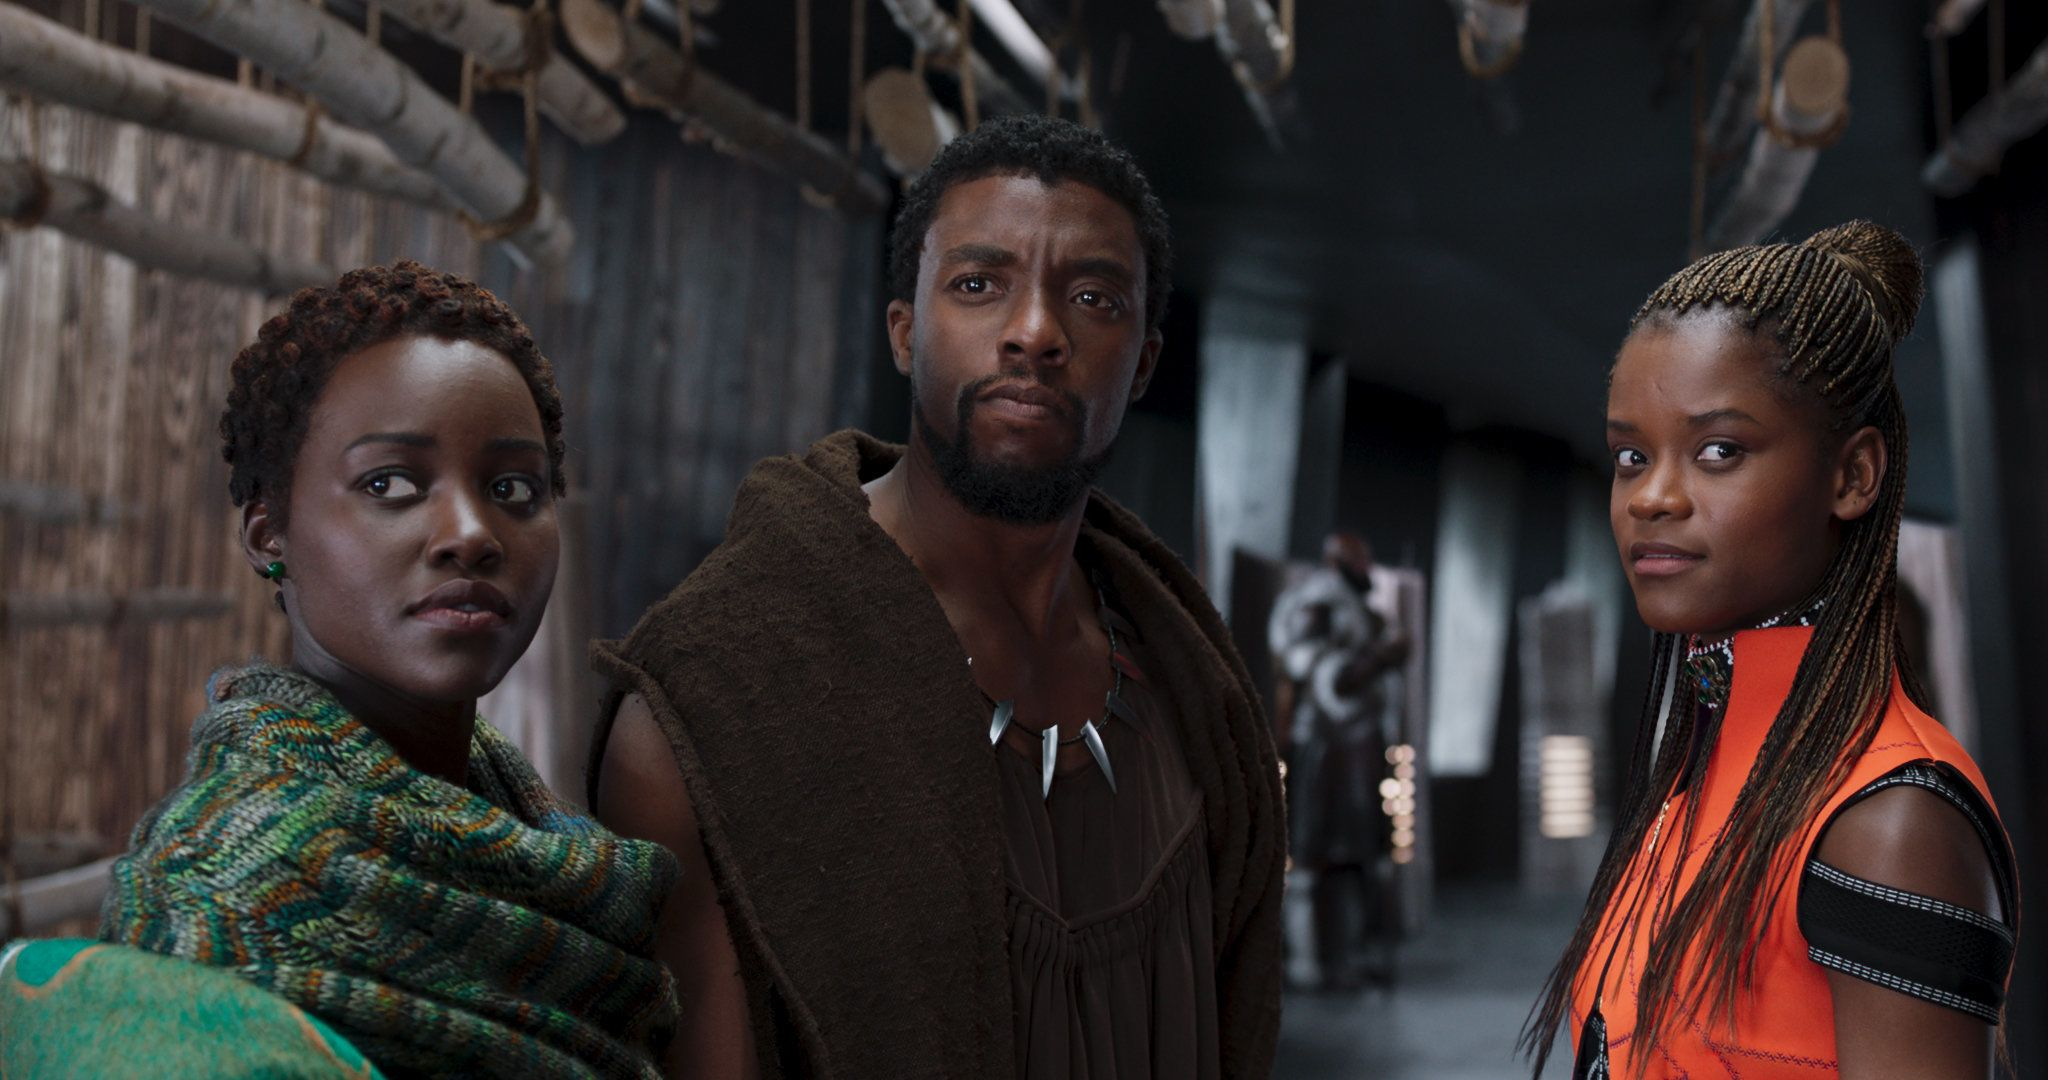 Reasons Why 'Black Panther' Is Expected to Dominate the Box Office